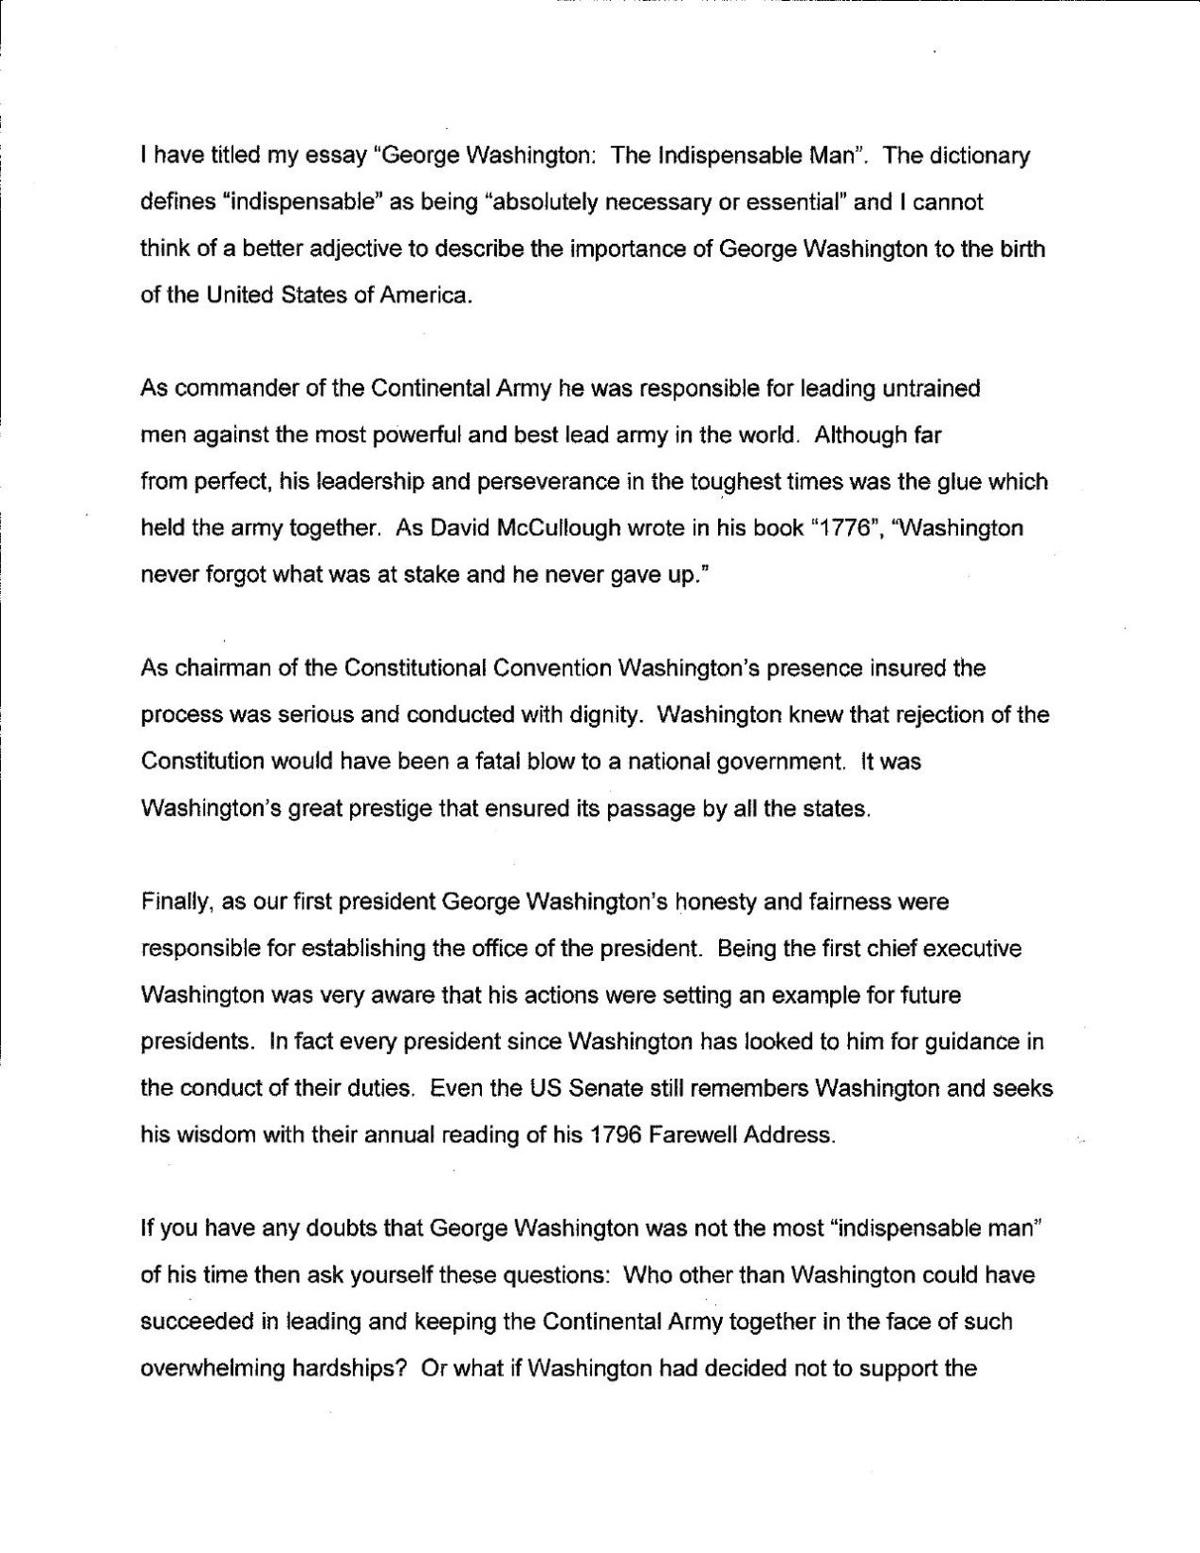 George Washington Essay Winnerpdf   Heraldcouriercom Download Pdf George Washington Essay Winnerpdf